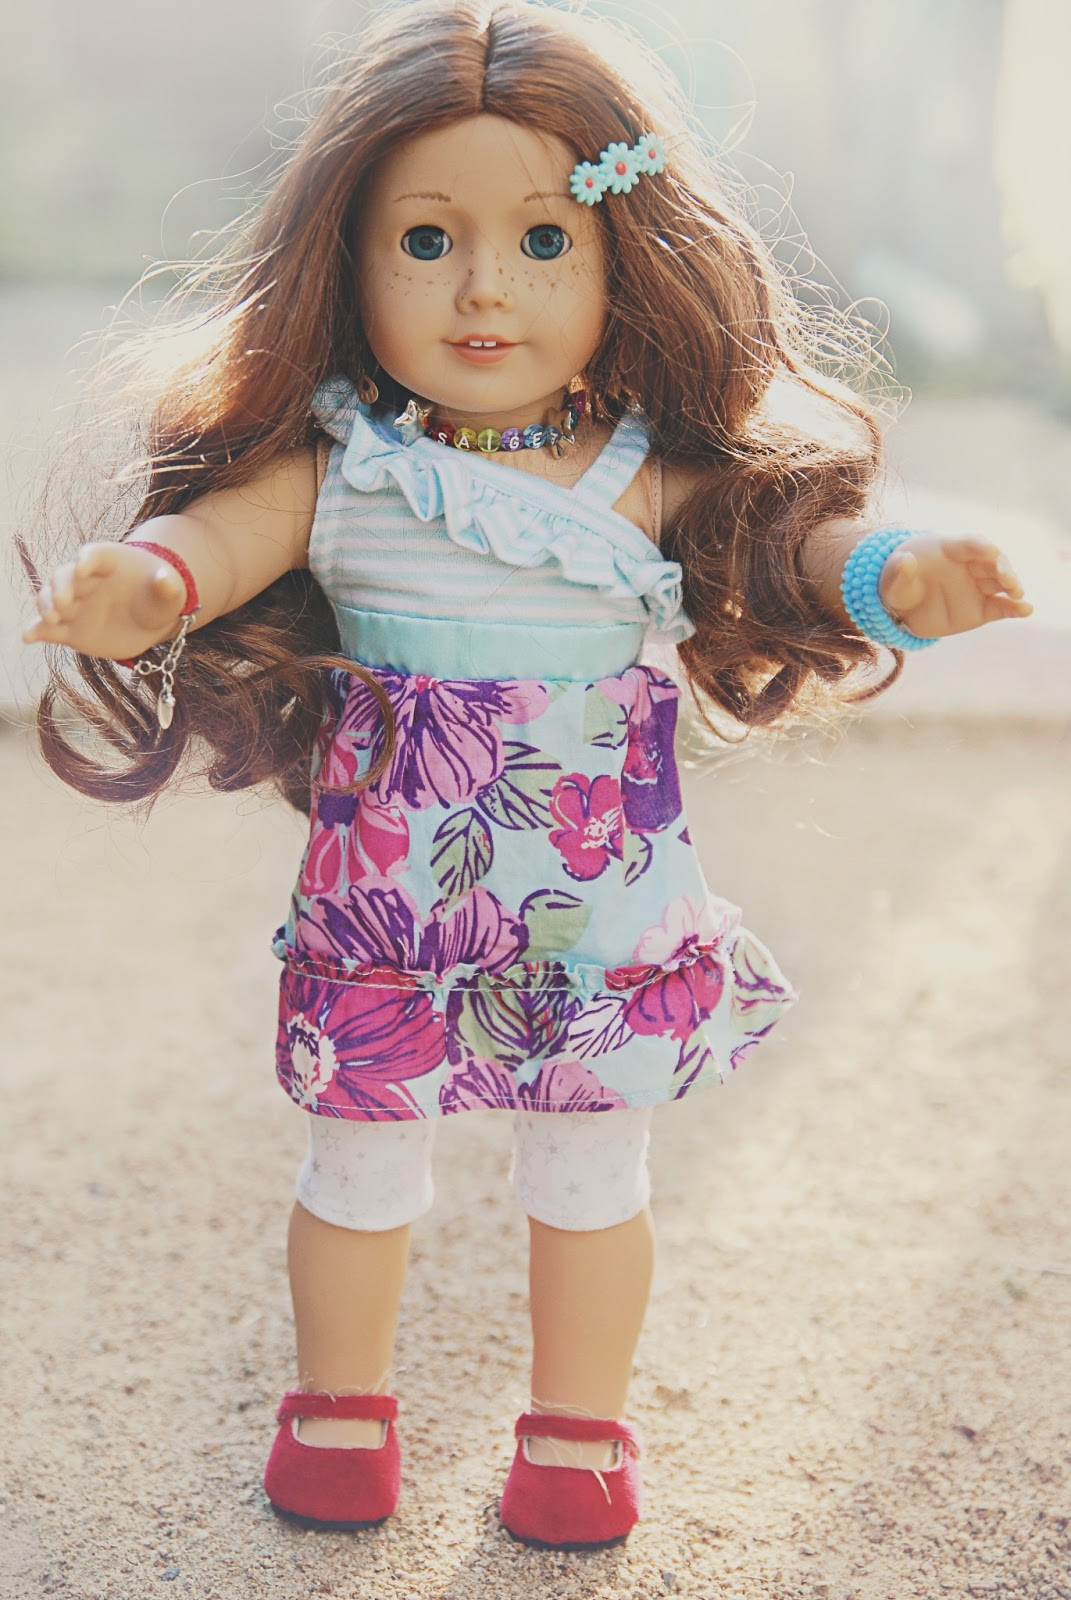 Pretty Color To Dye Your Hair: :: Judy Devine ::: More American Girl Doll Photos From The